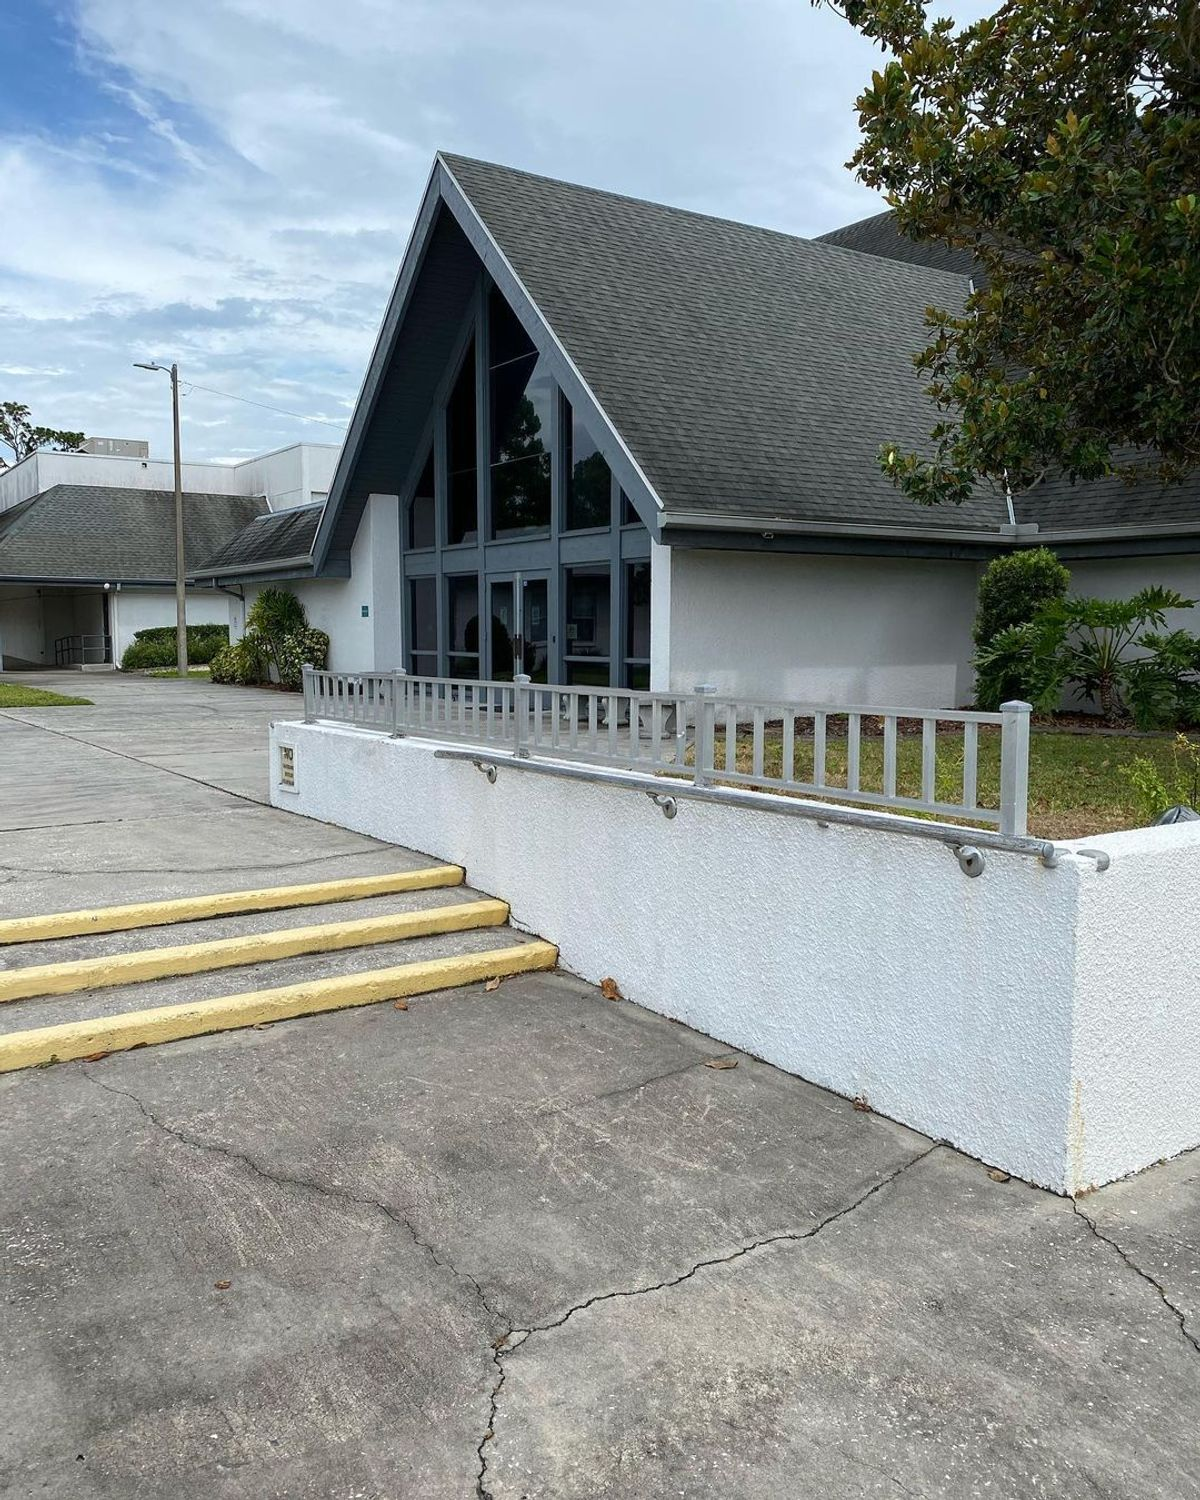 Image for skate spot Conway United Methodist Church - 3 Stair Out Rails